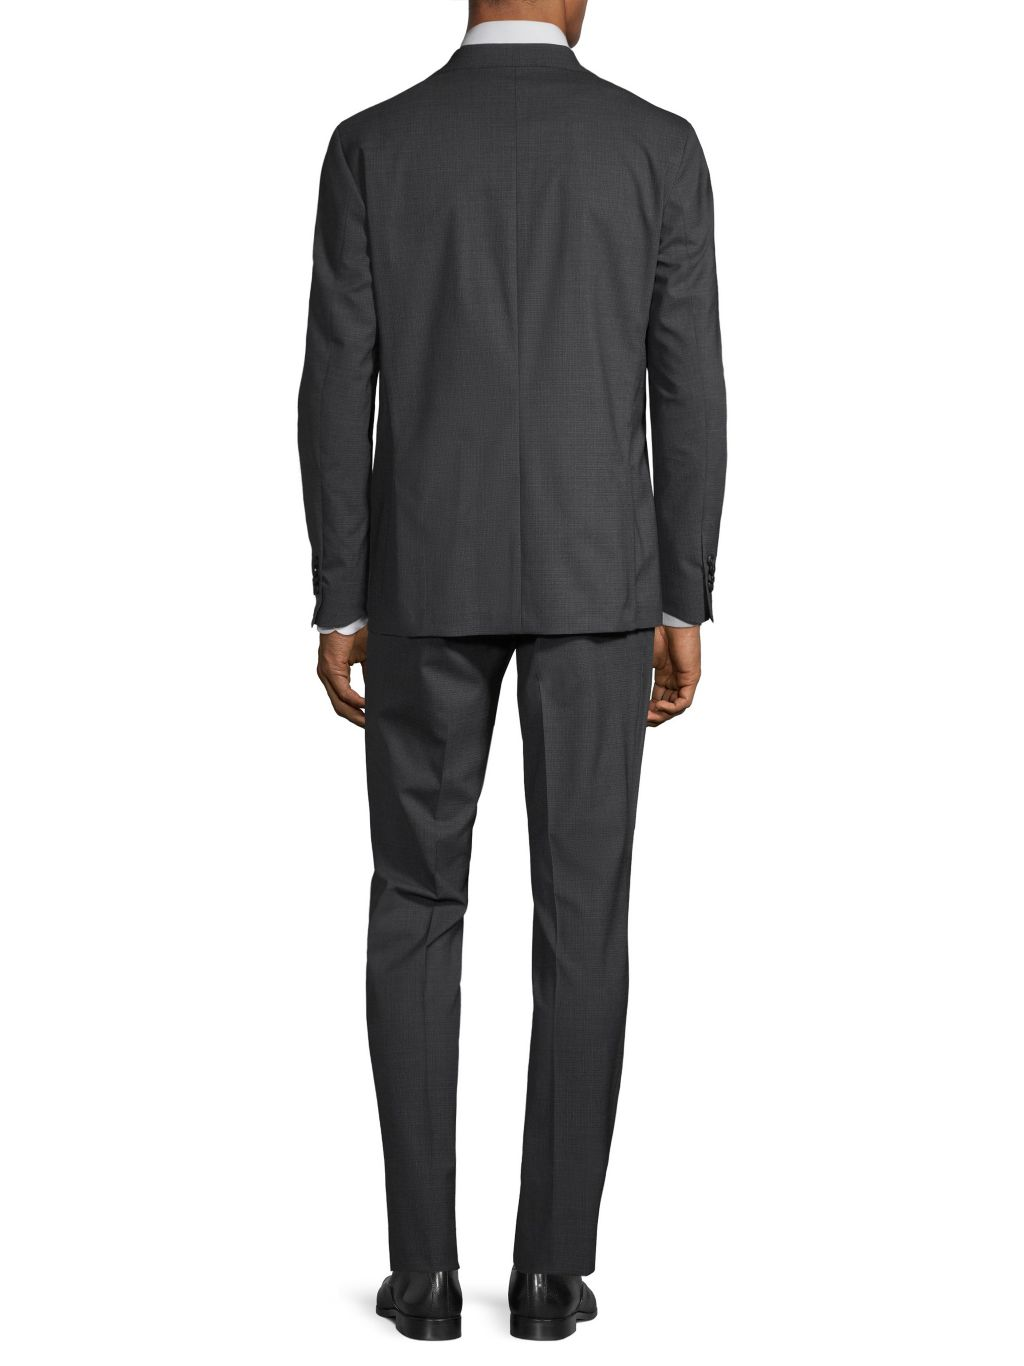 COLE HAAN GRAND OS Modern-Fit Plaid Wool-Blend Suit